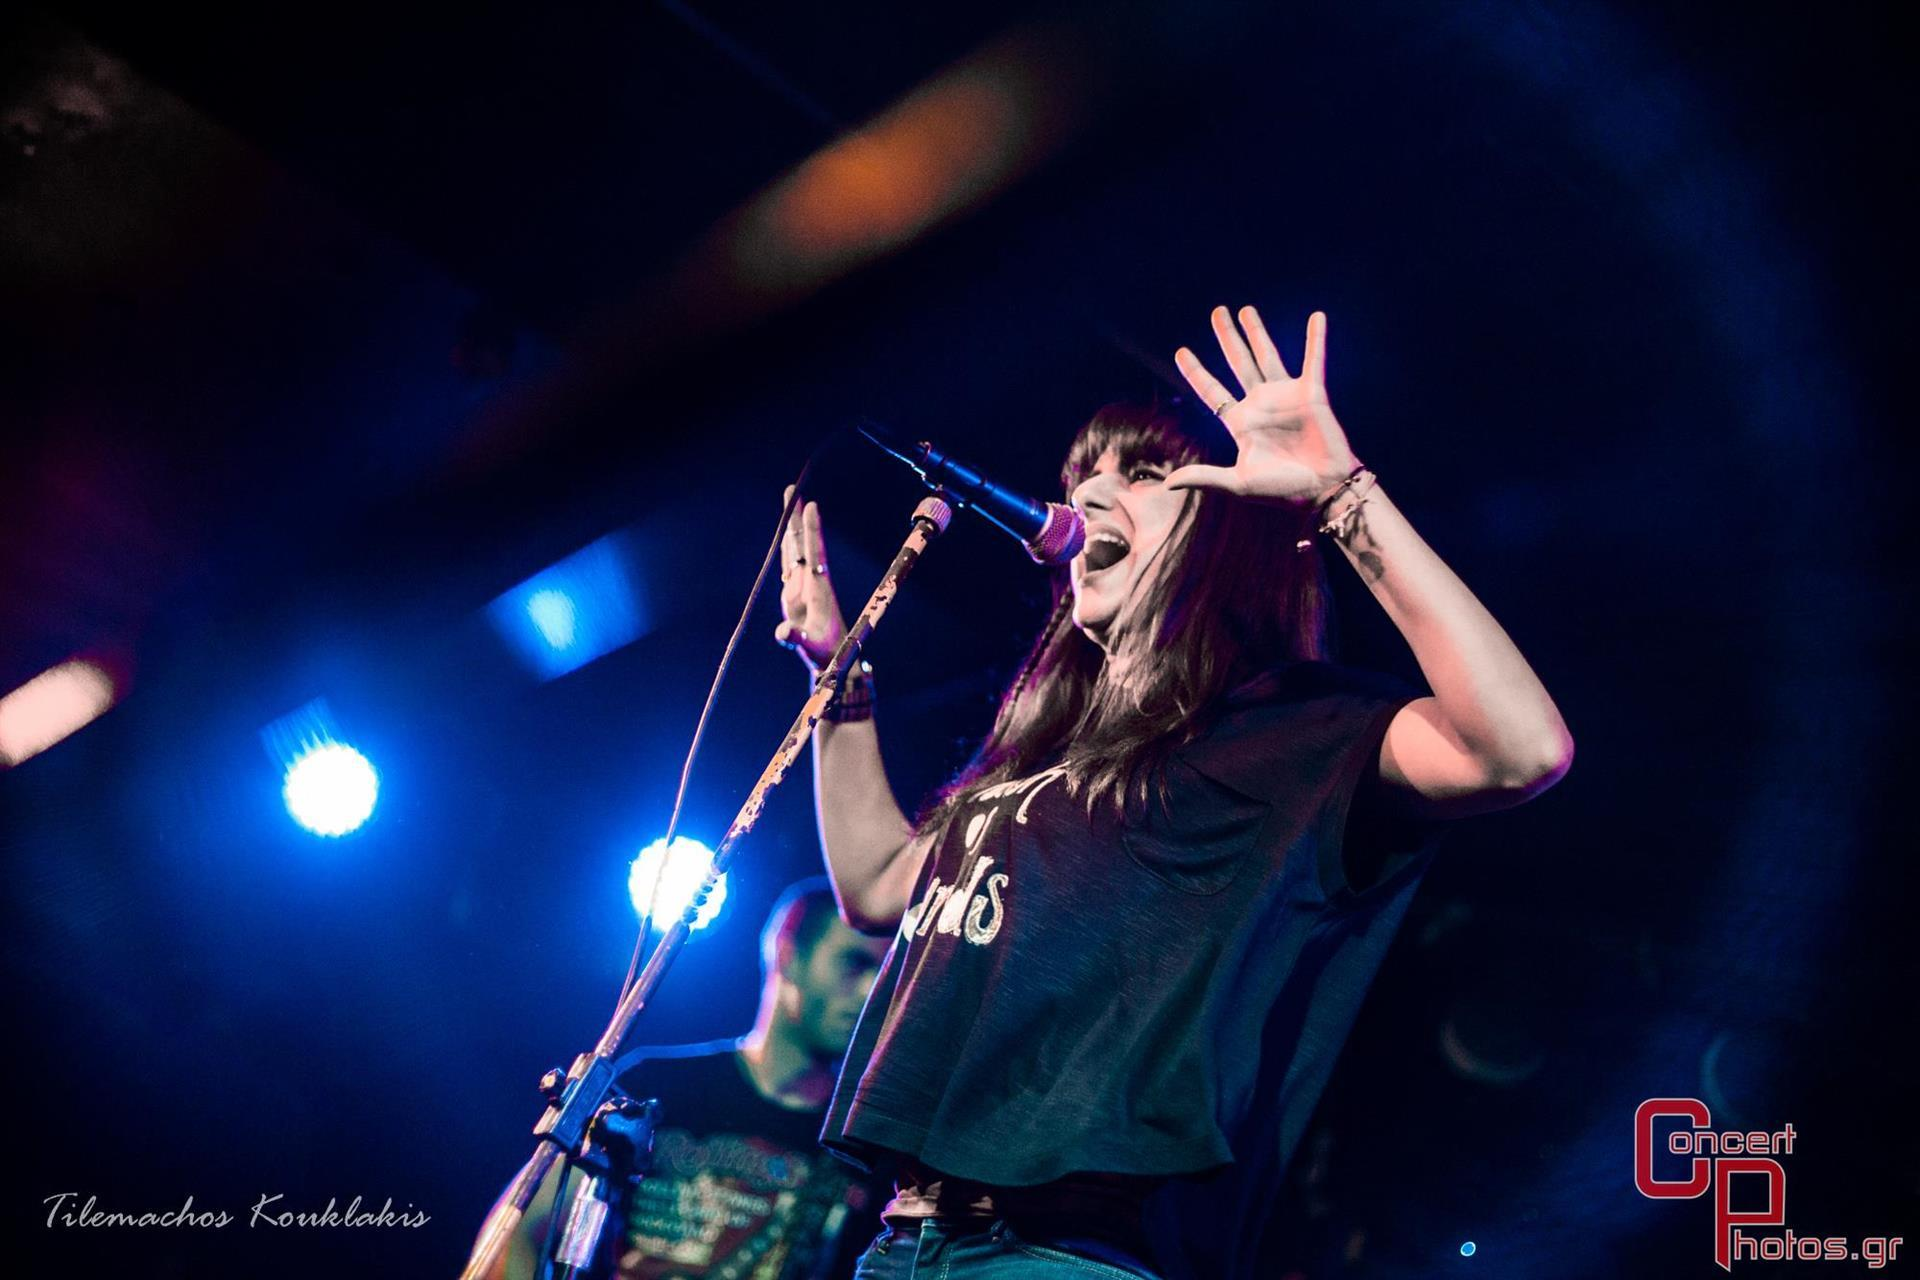 Battle Of The Bands Athens - Leg 4-test photographer:  - Battle Of The Bands-20150208-224510